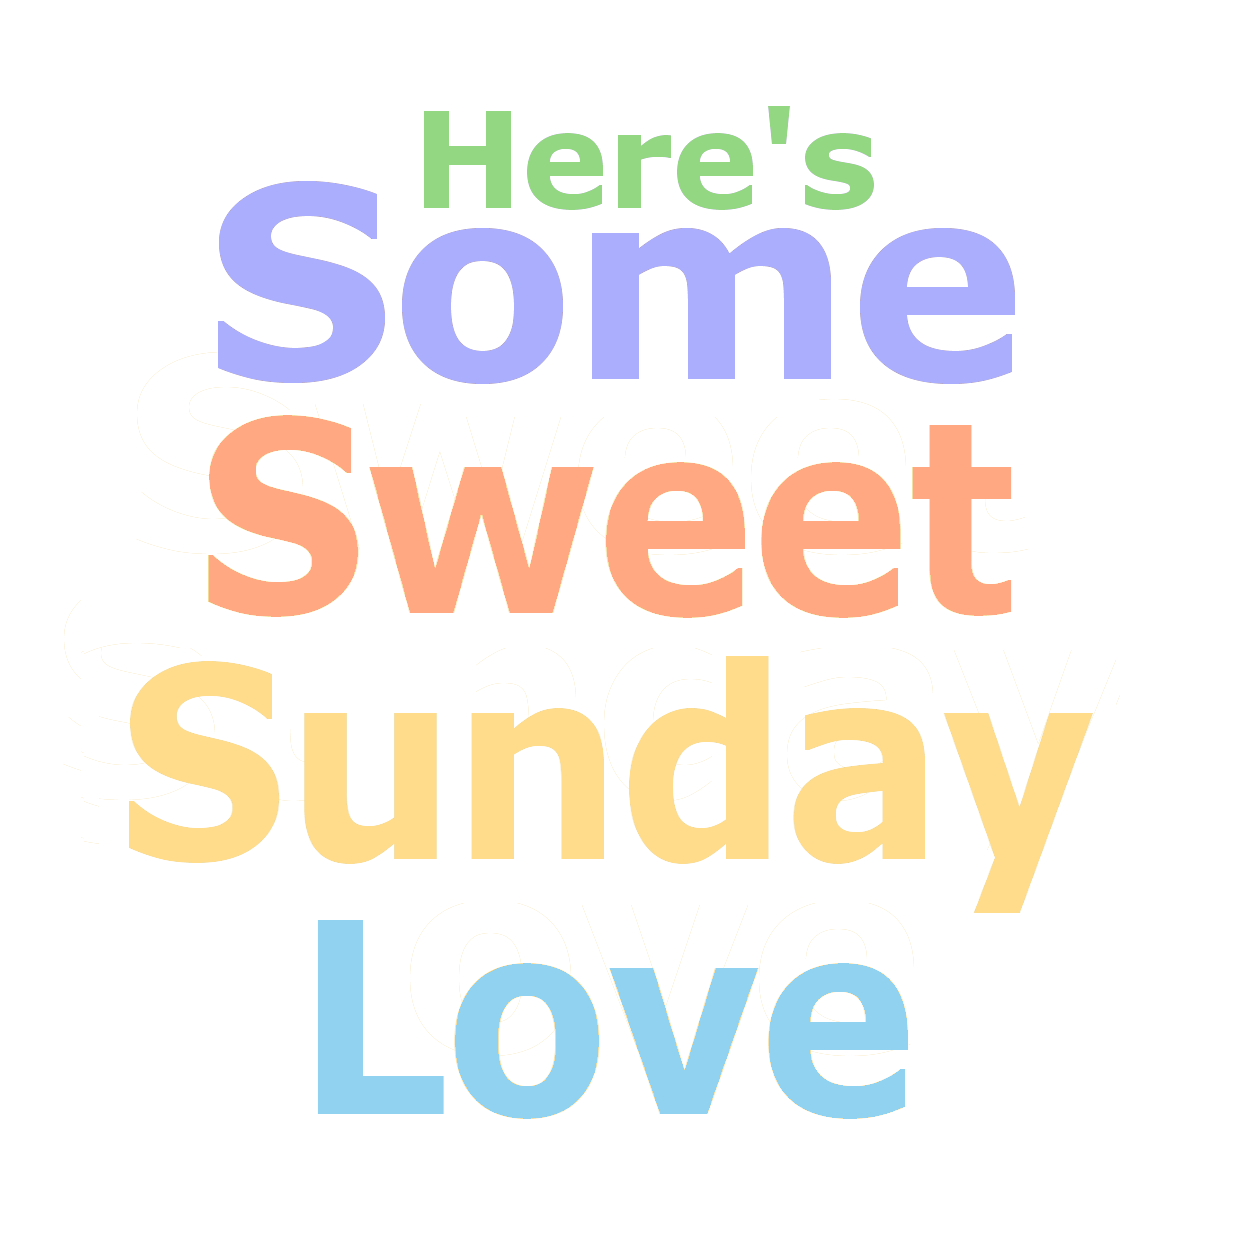 Sweet Sunday Love